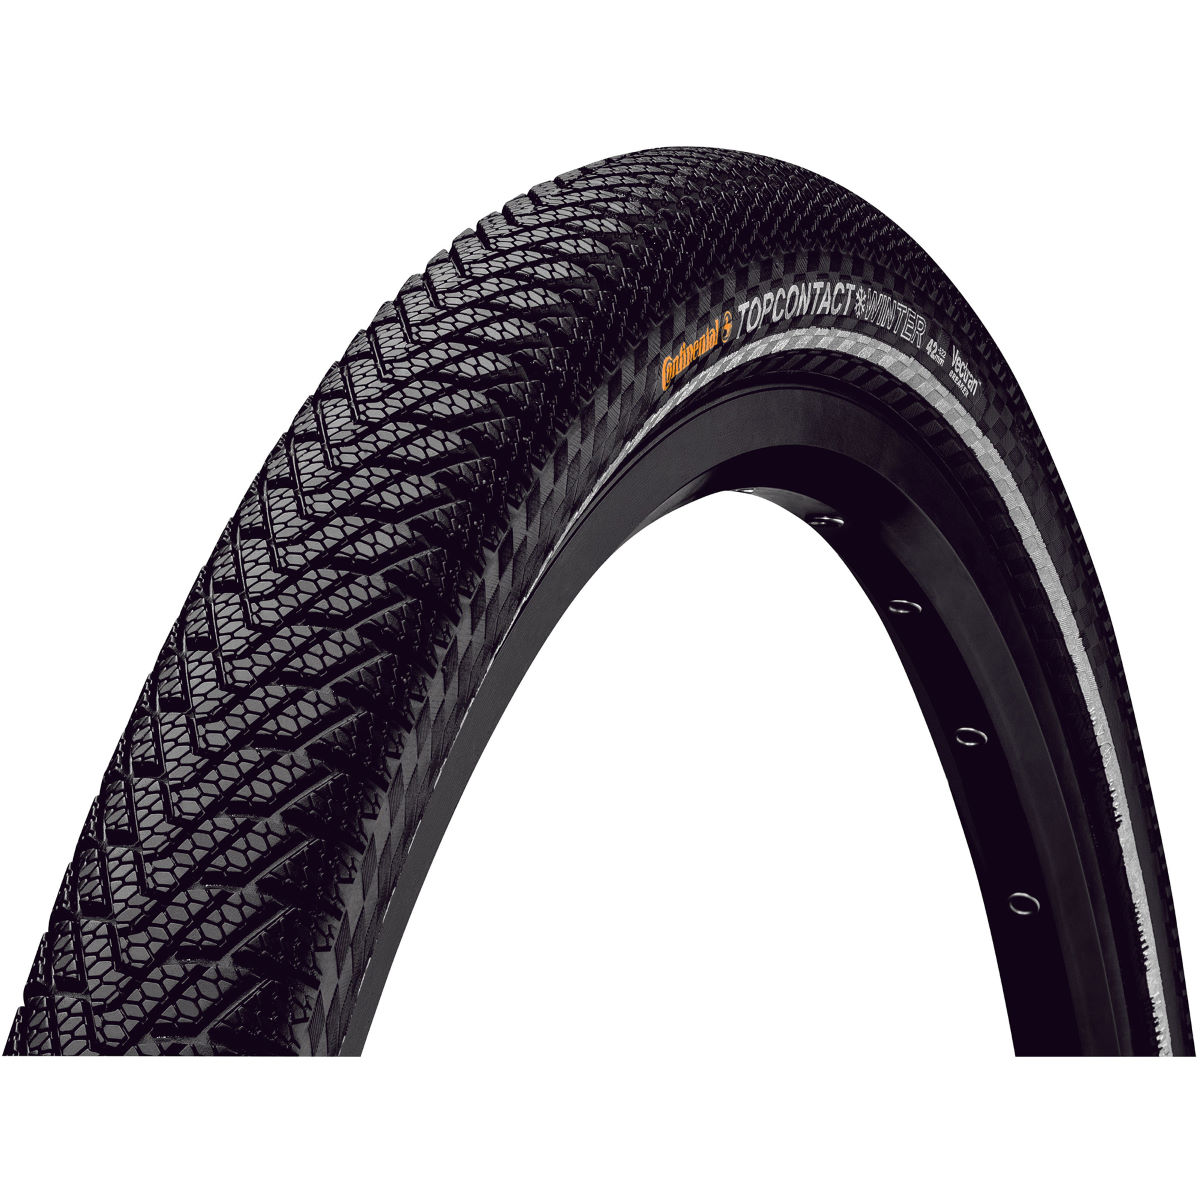 Continental Continental Top Contact Winter II Premium Folding Road Tyre   Tyres